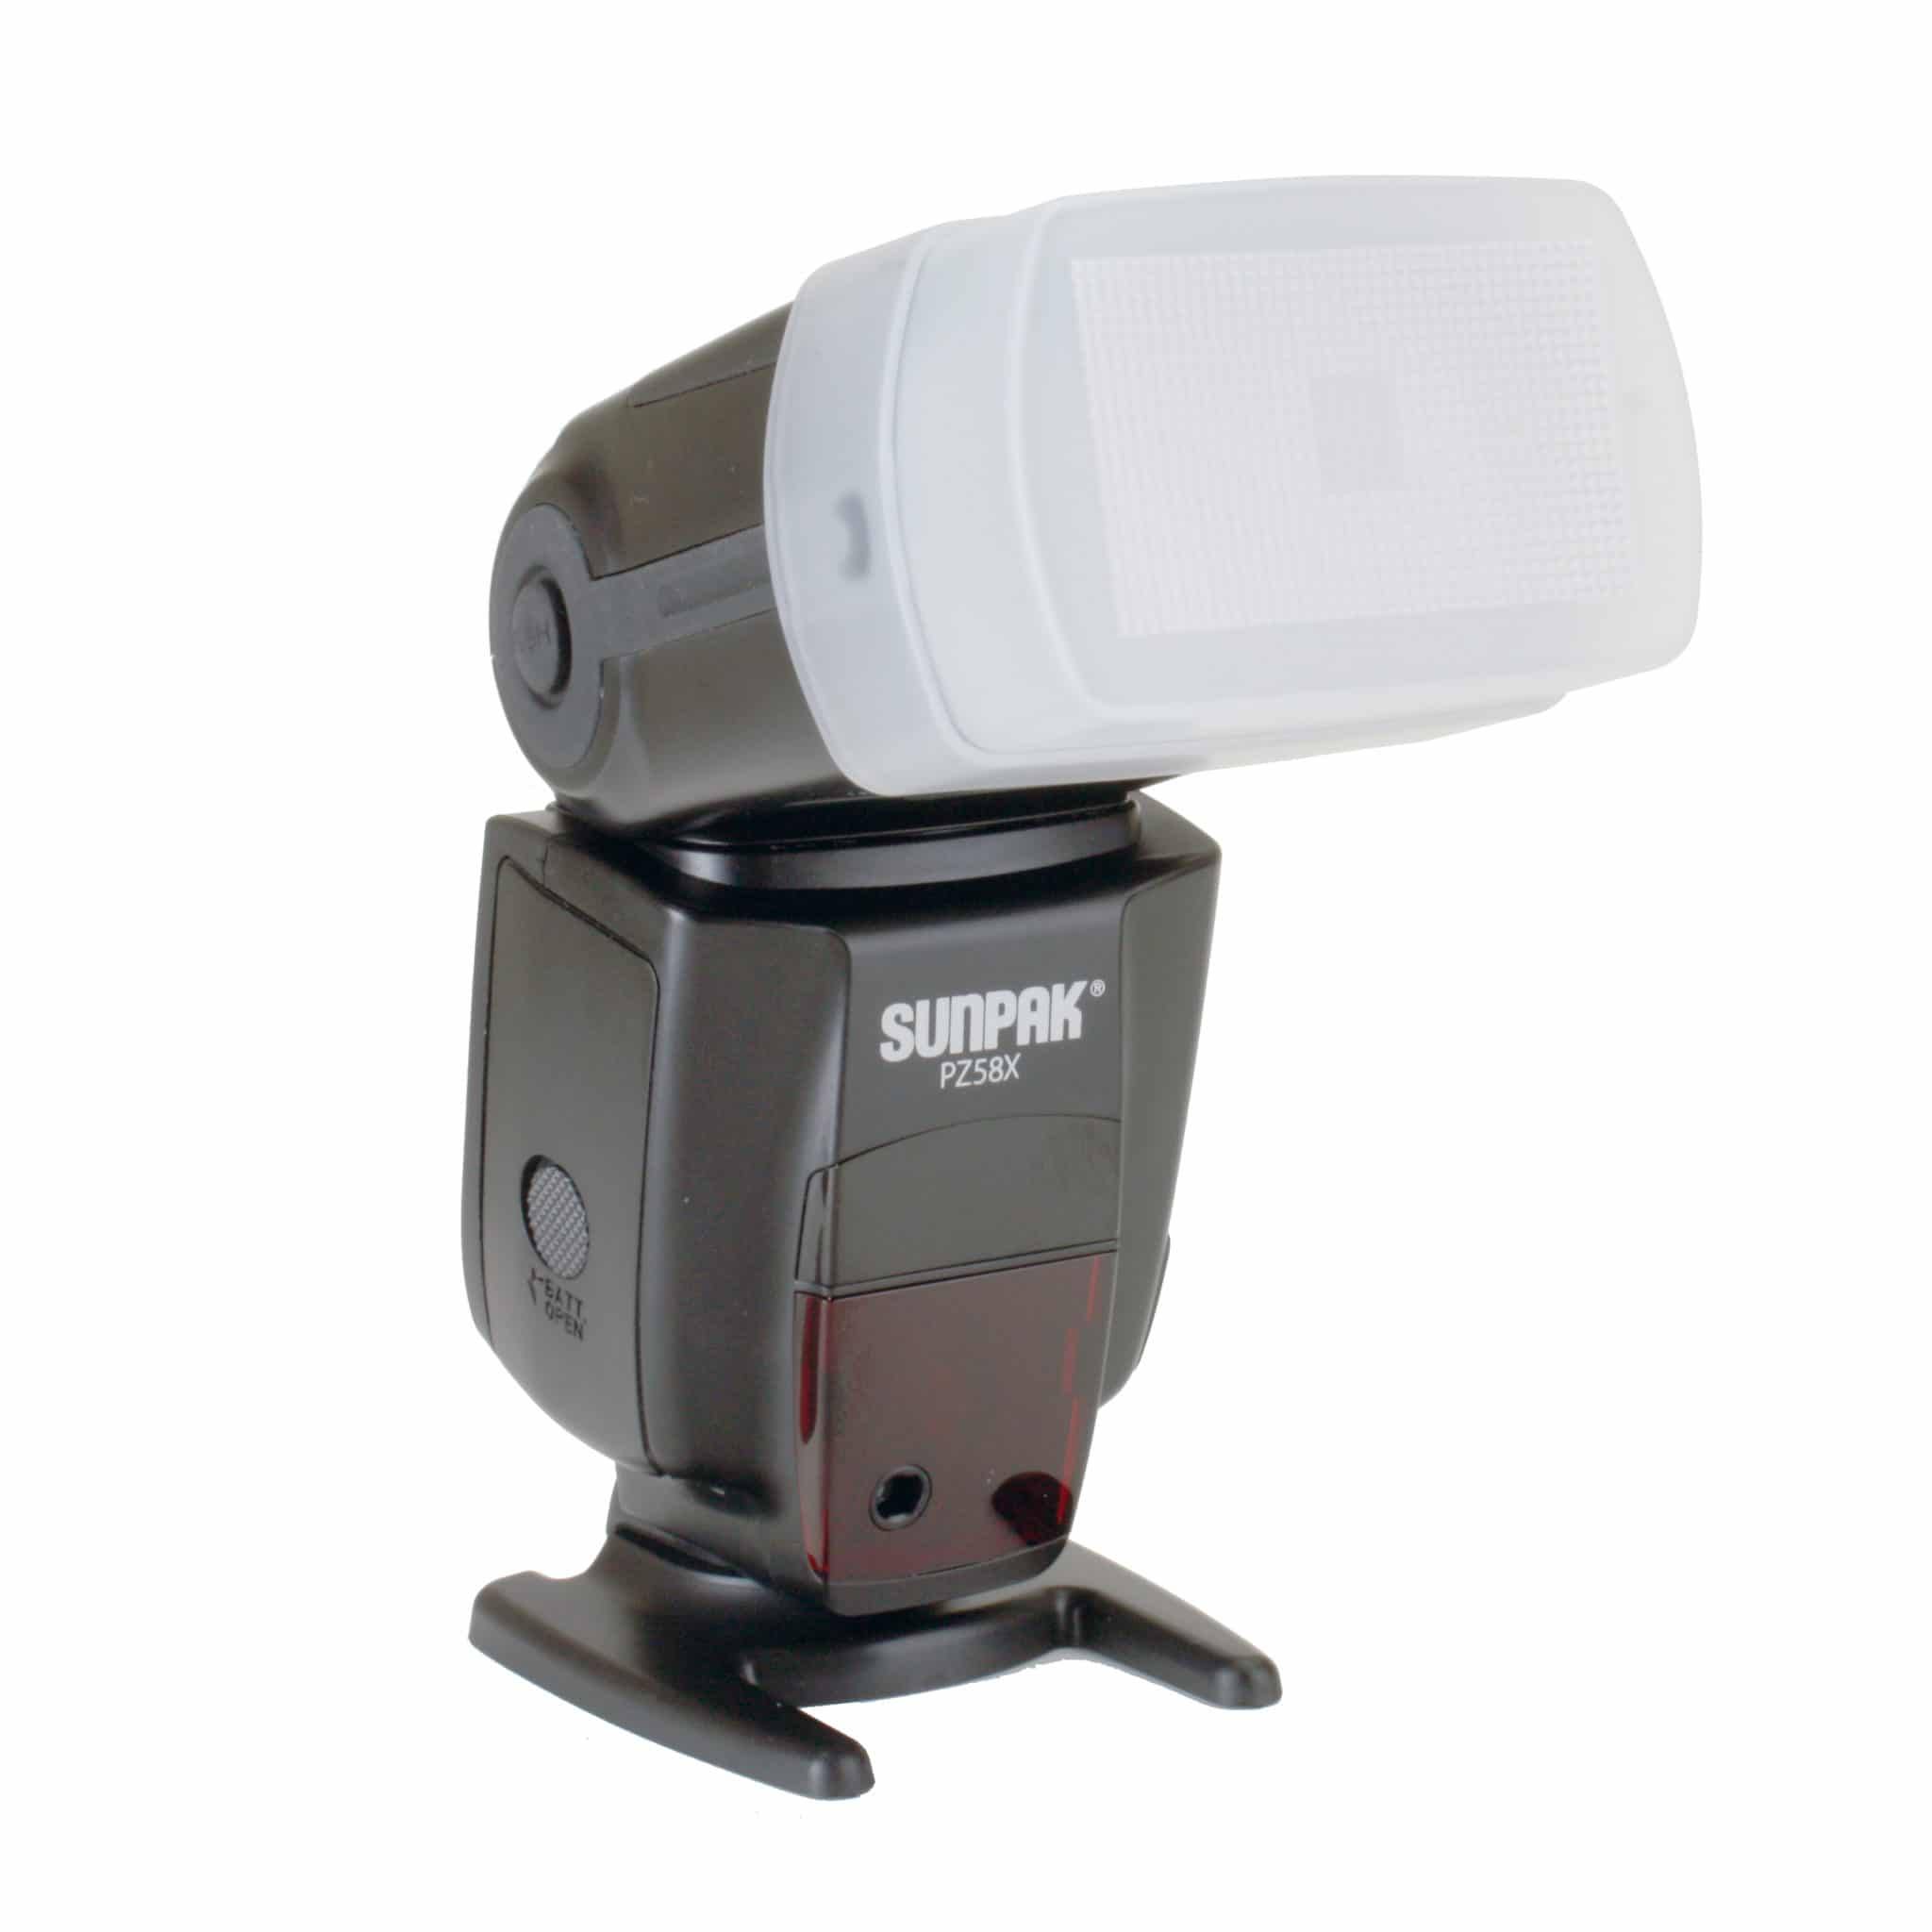 Sunpak PZ58X Flash